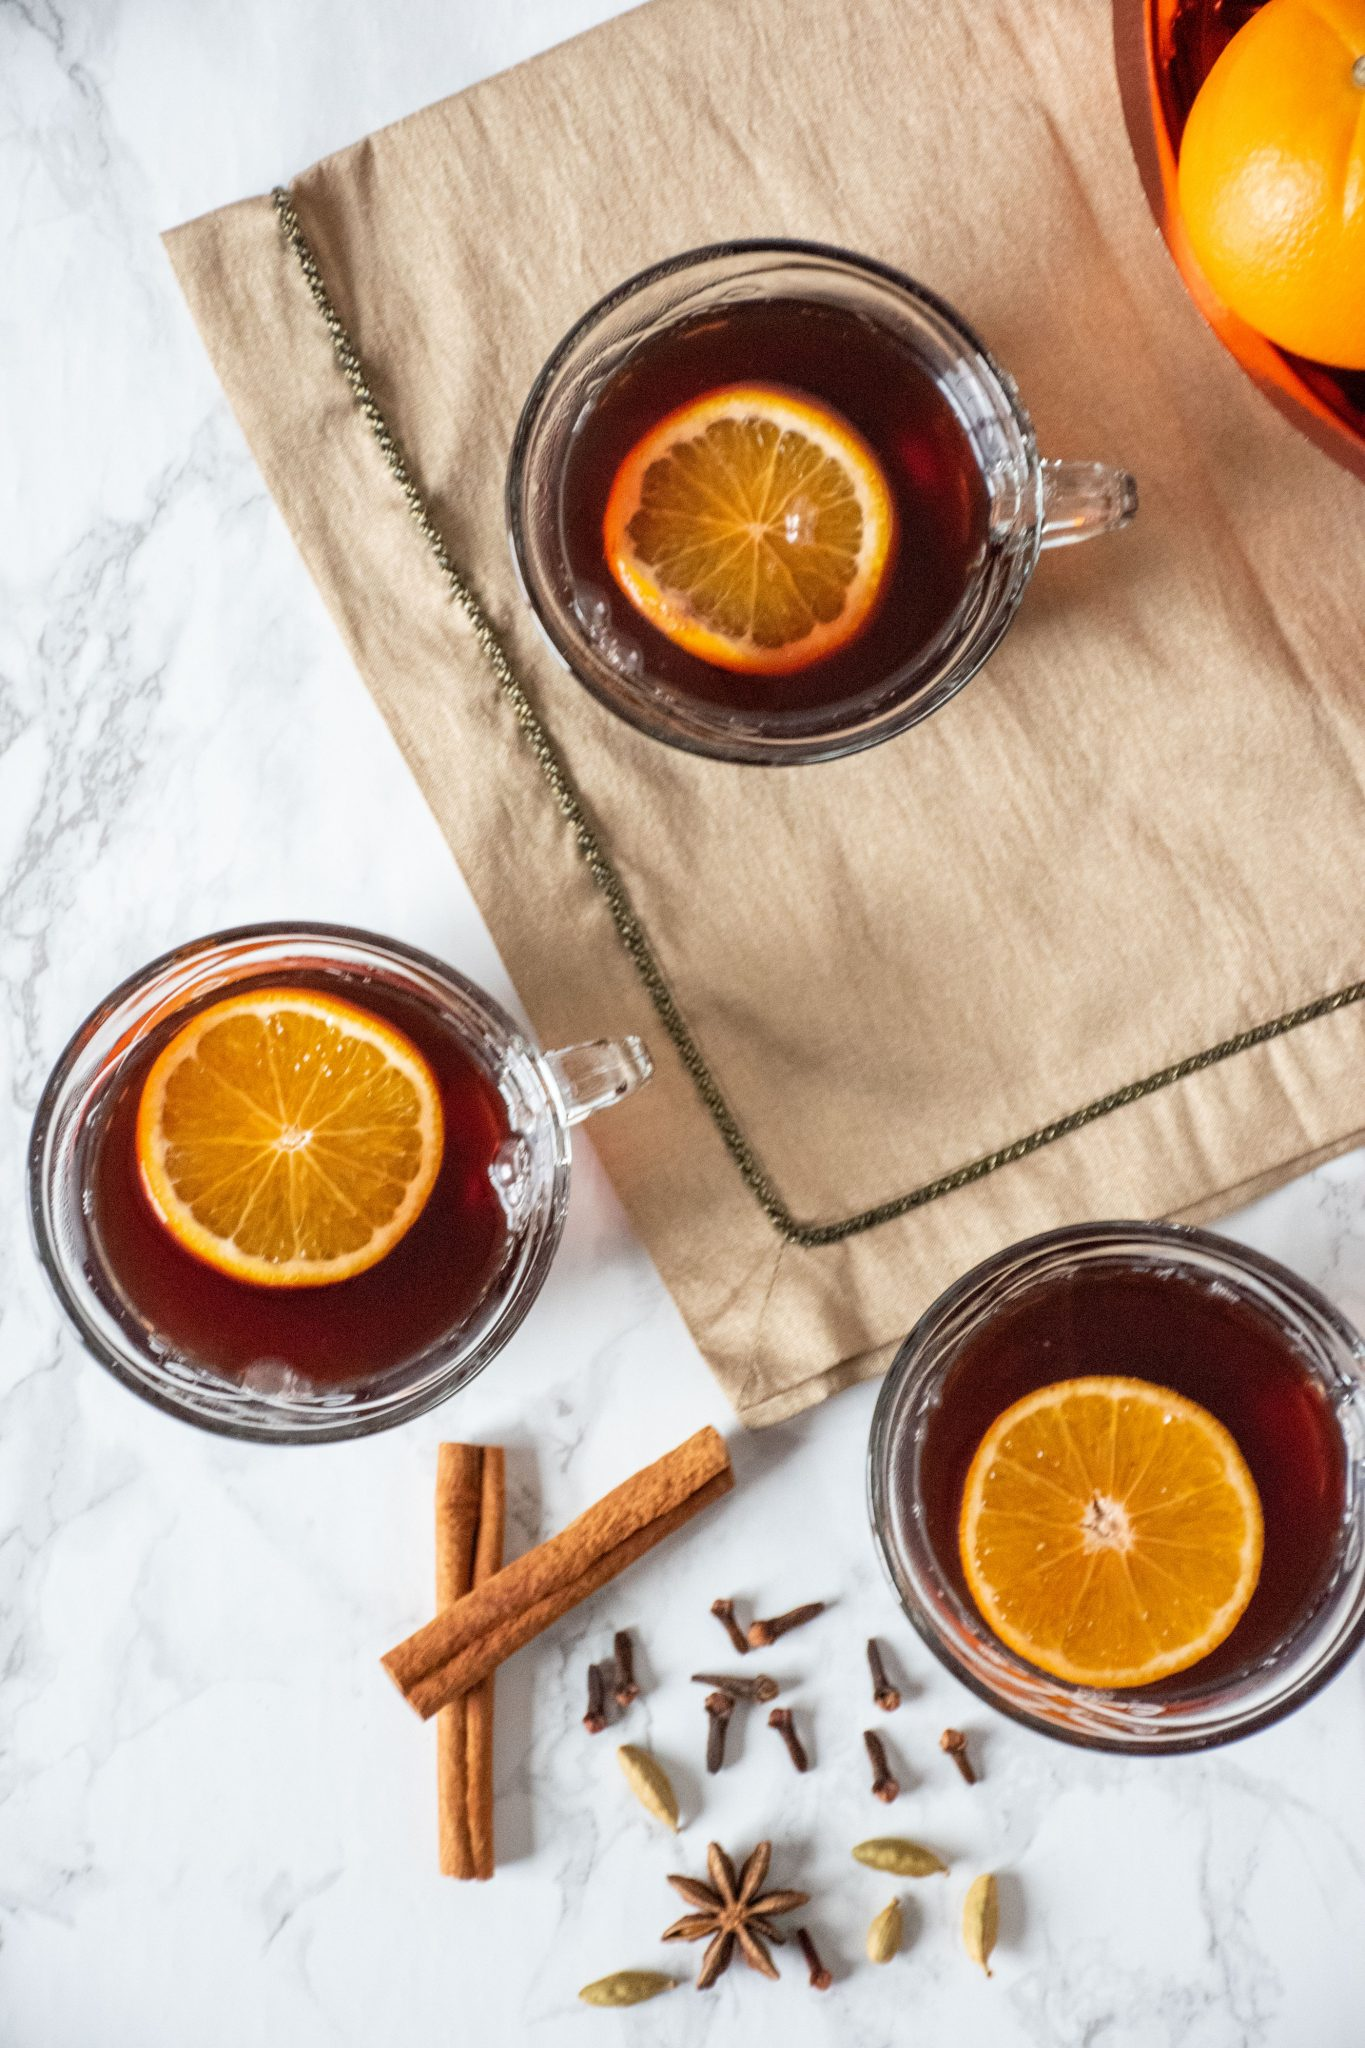 Overhead shot of 3 small glass mugs filled with mulled grape juice, each with an orange slice in them.